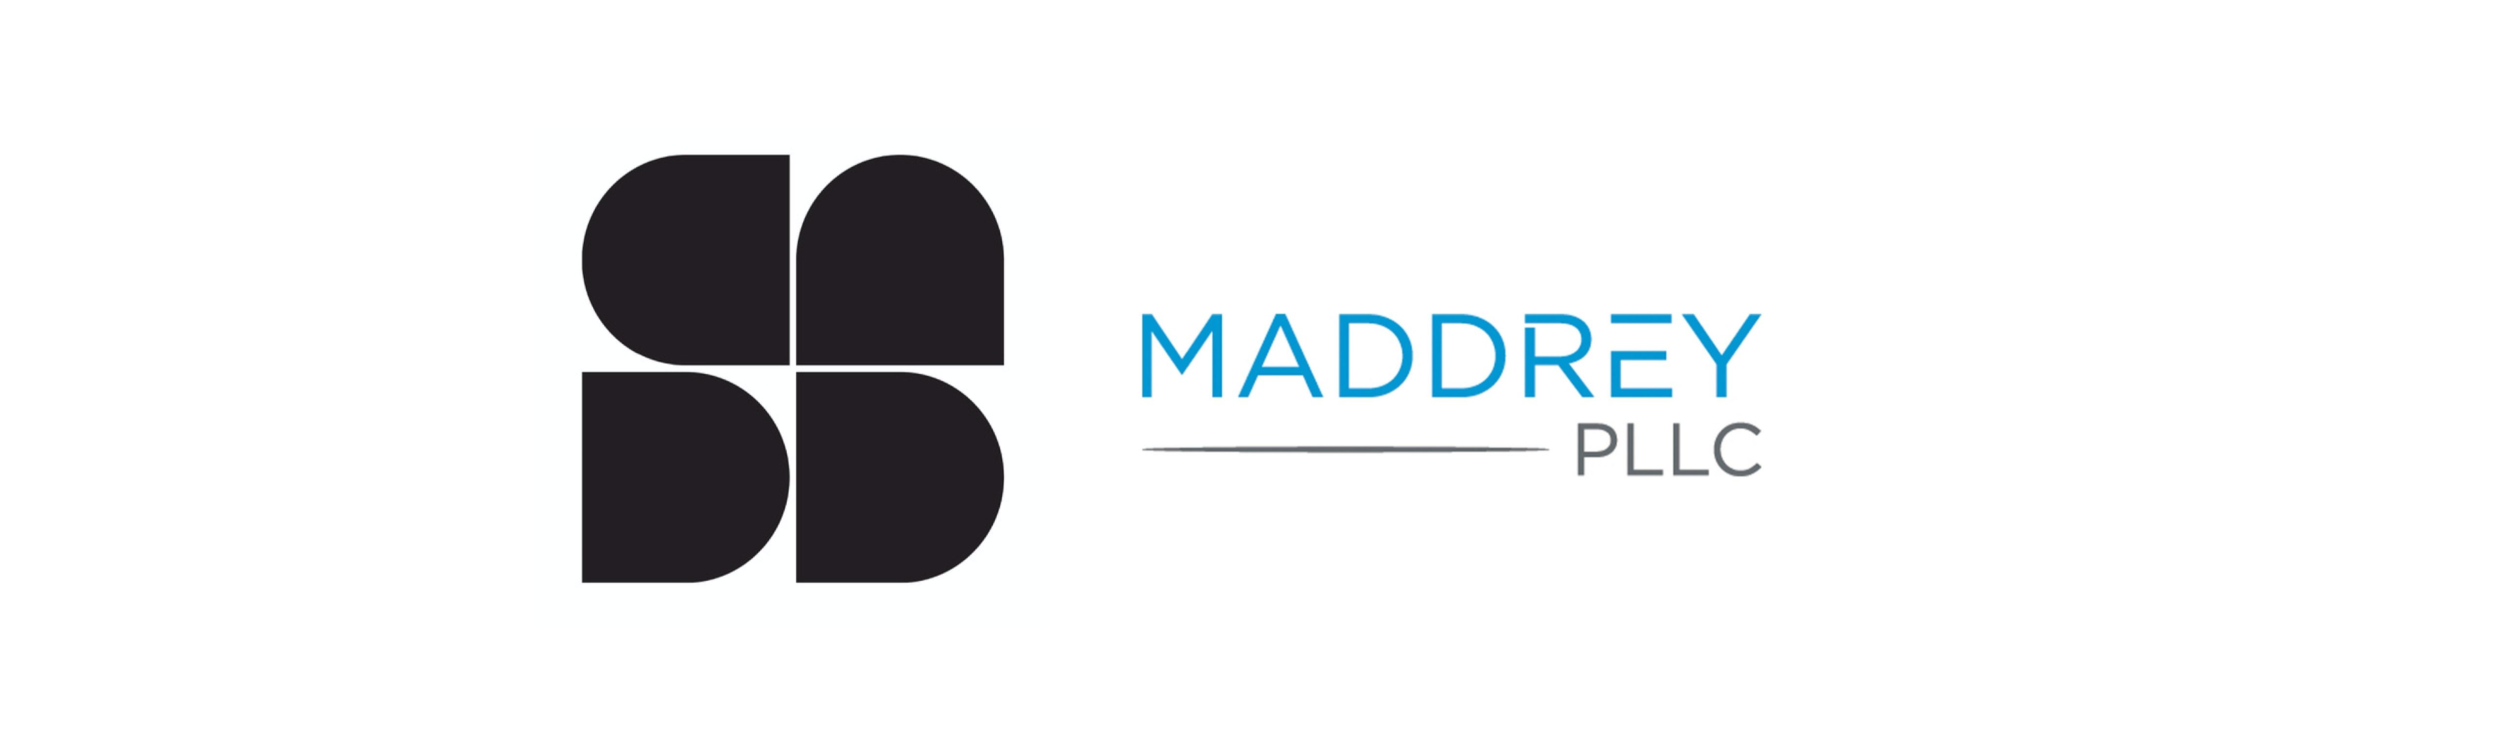 Logo of CADD and Maddrey LLC